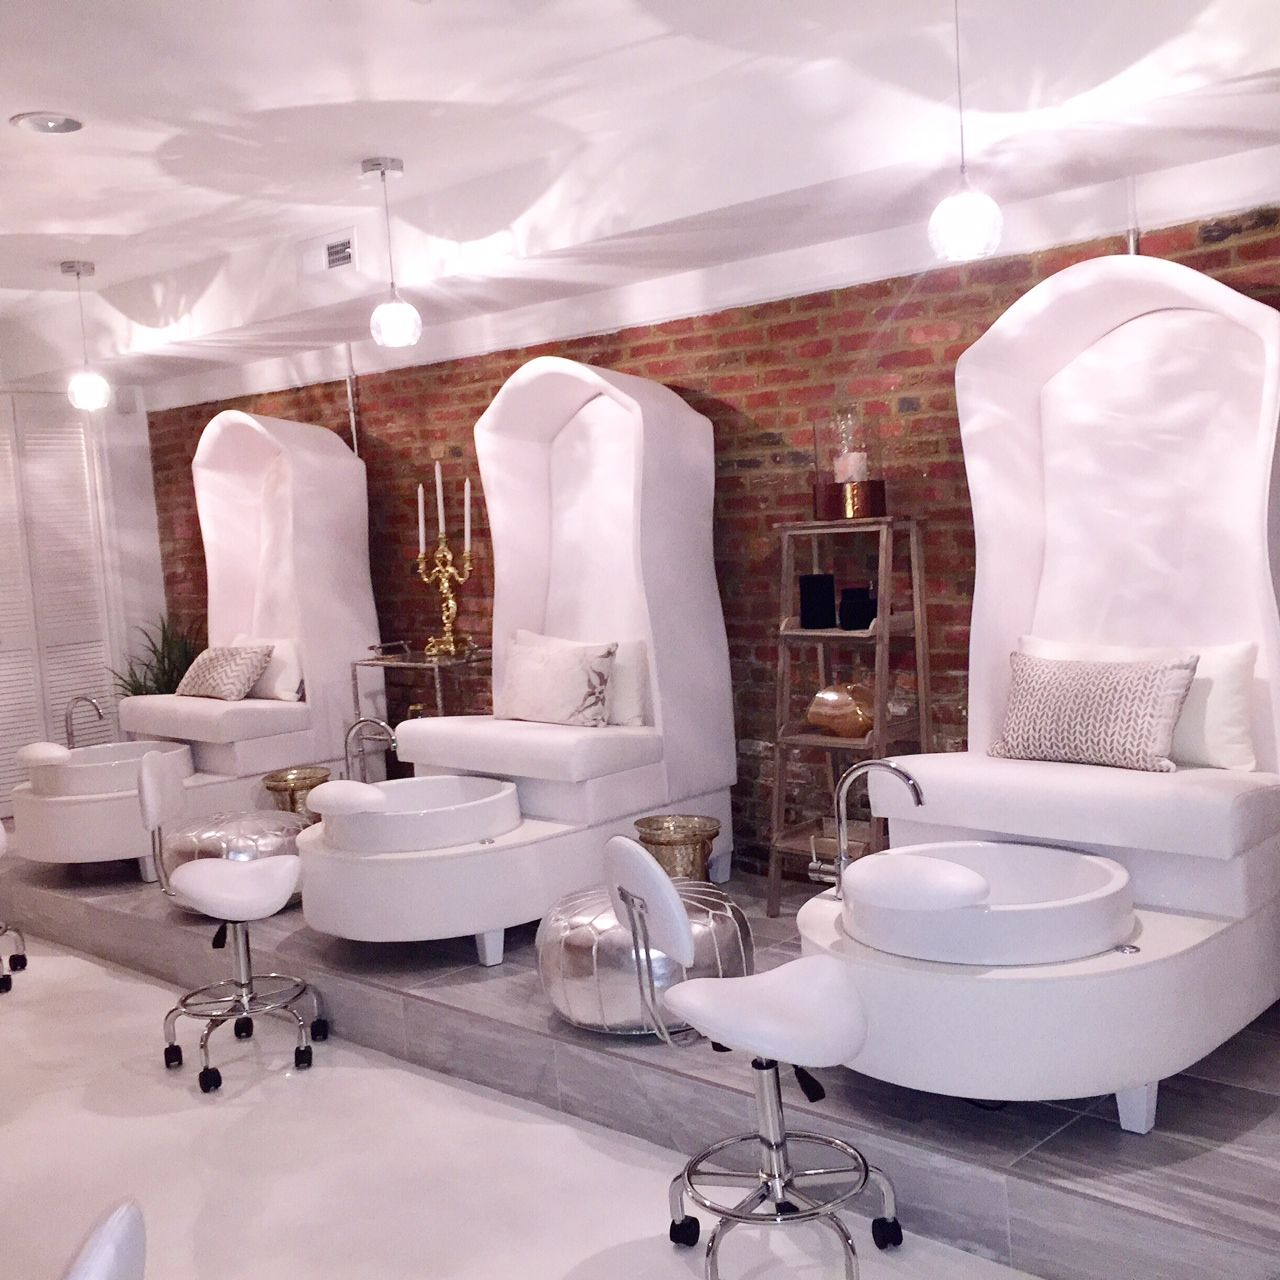 Pedicure Chair Ideas find this pin and more on 1 spa ideas separate chairs for pedicure area Audrey Pedicure Chair